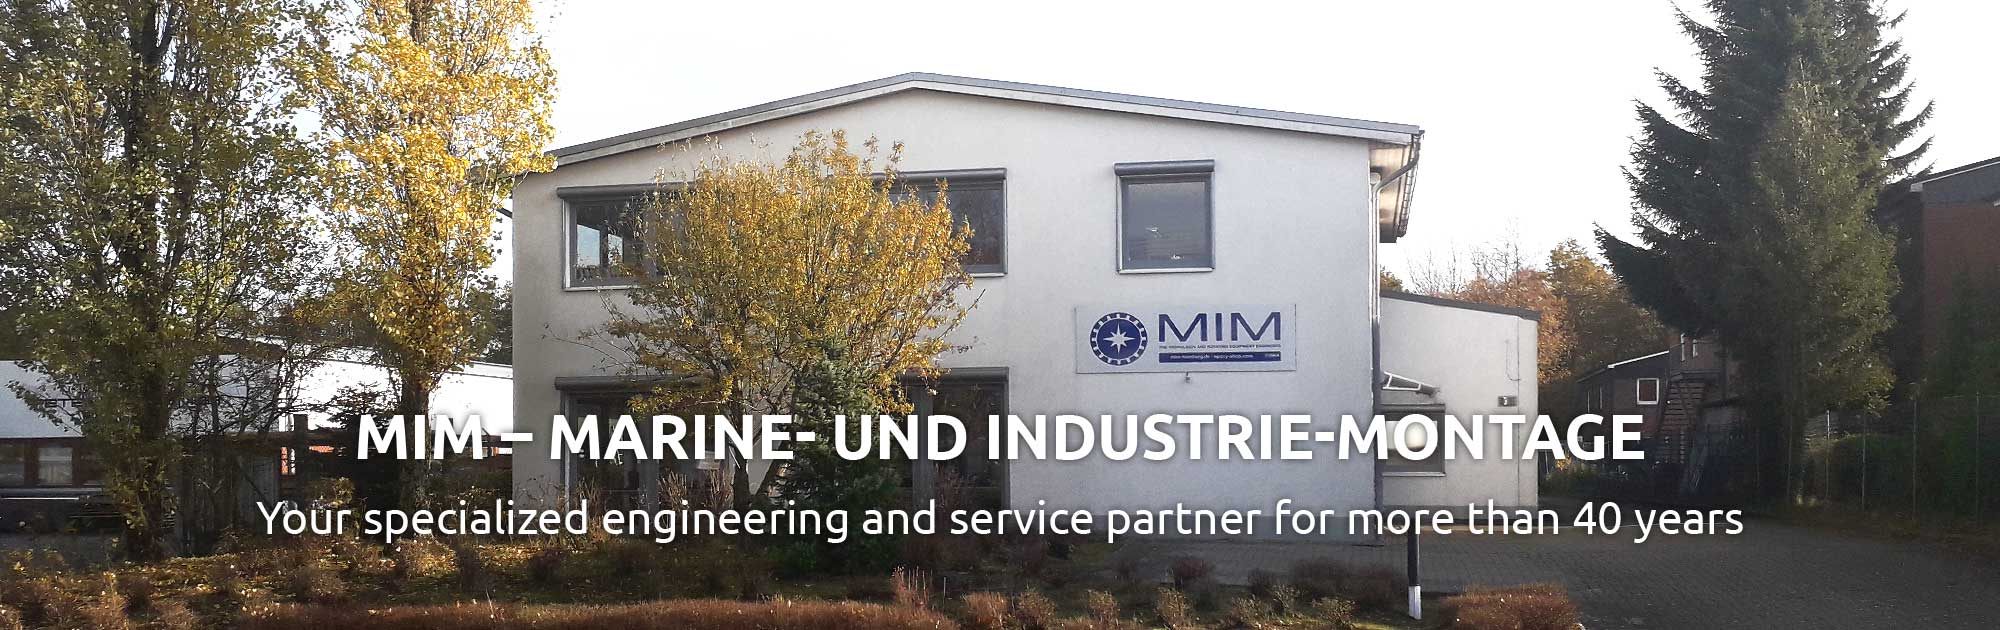 MIM GmbH - Your specialist for foundation of machines and plants in Hamburg and Norderstedt.